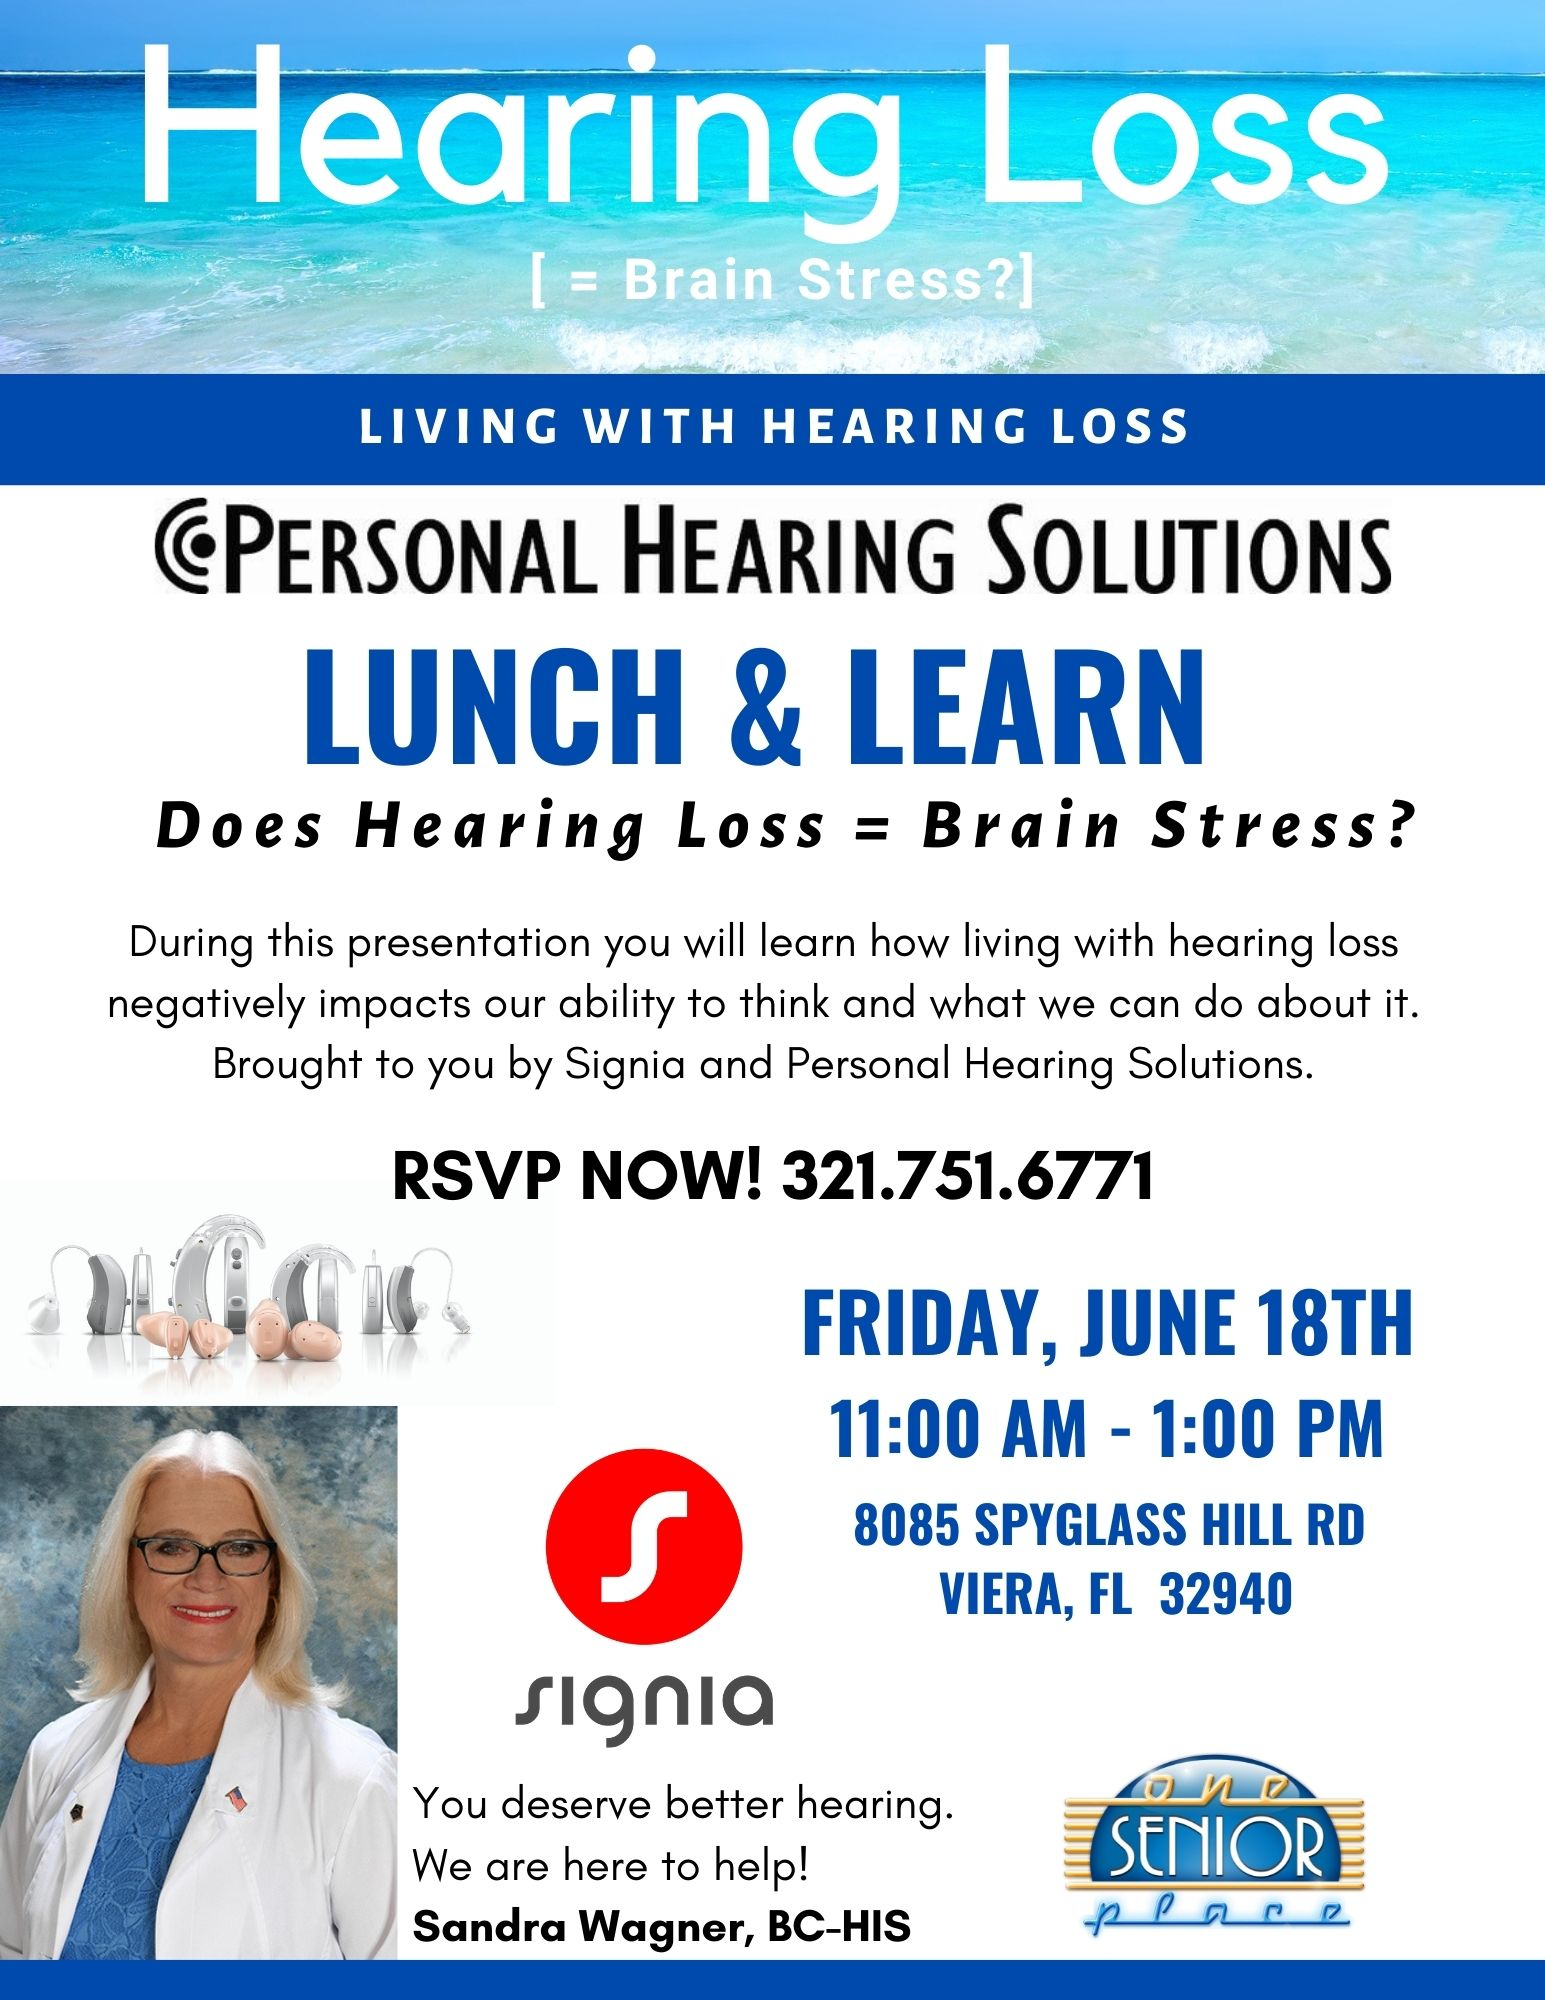 Hearing Loss presented by Personal Hearing Solutions